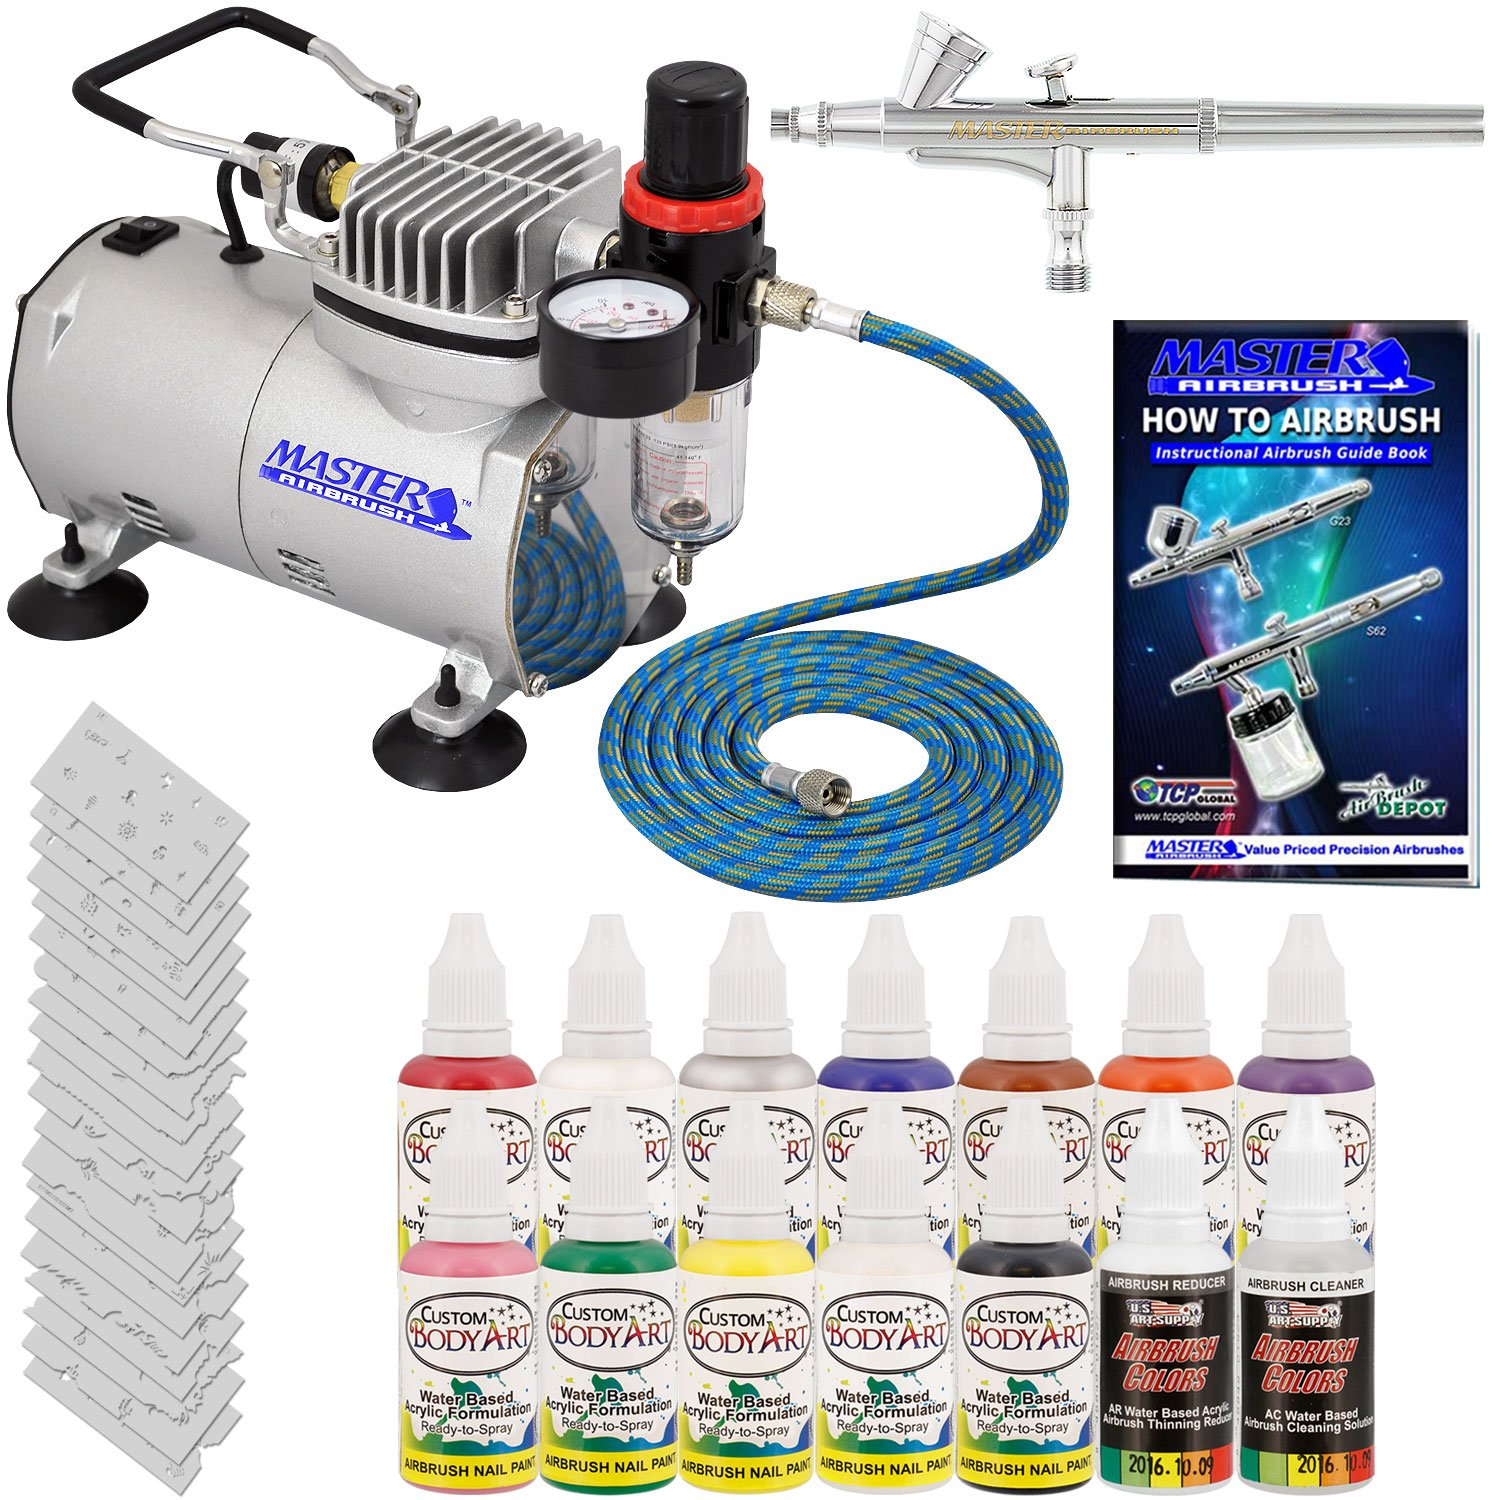 Amazon master airbrush brand finger nail decorating system 1 airbrush air compressor stencil set of over 100 designs 6 hose kit of 12 popular nail paint colors in 2 oz bottles airbrush cleaner prinsesfo Choice Image